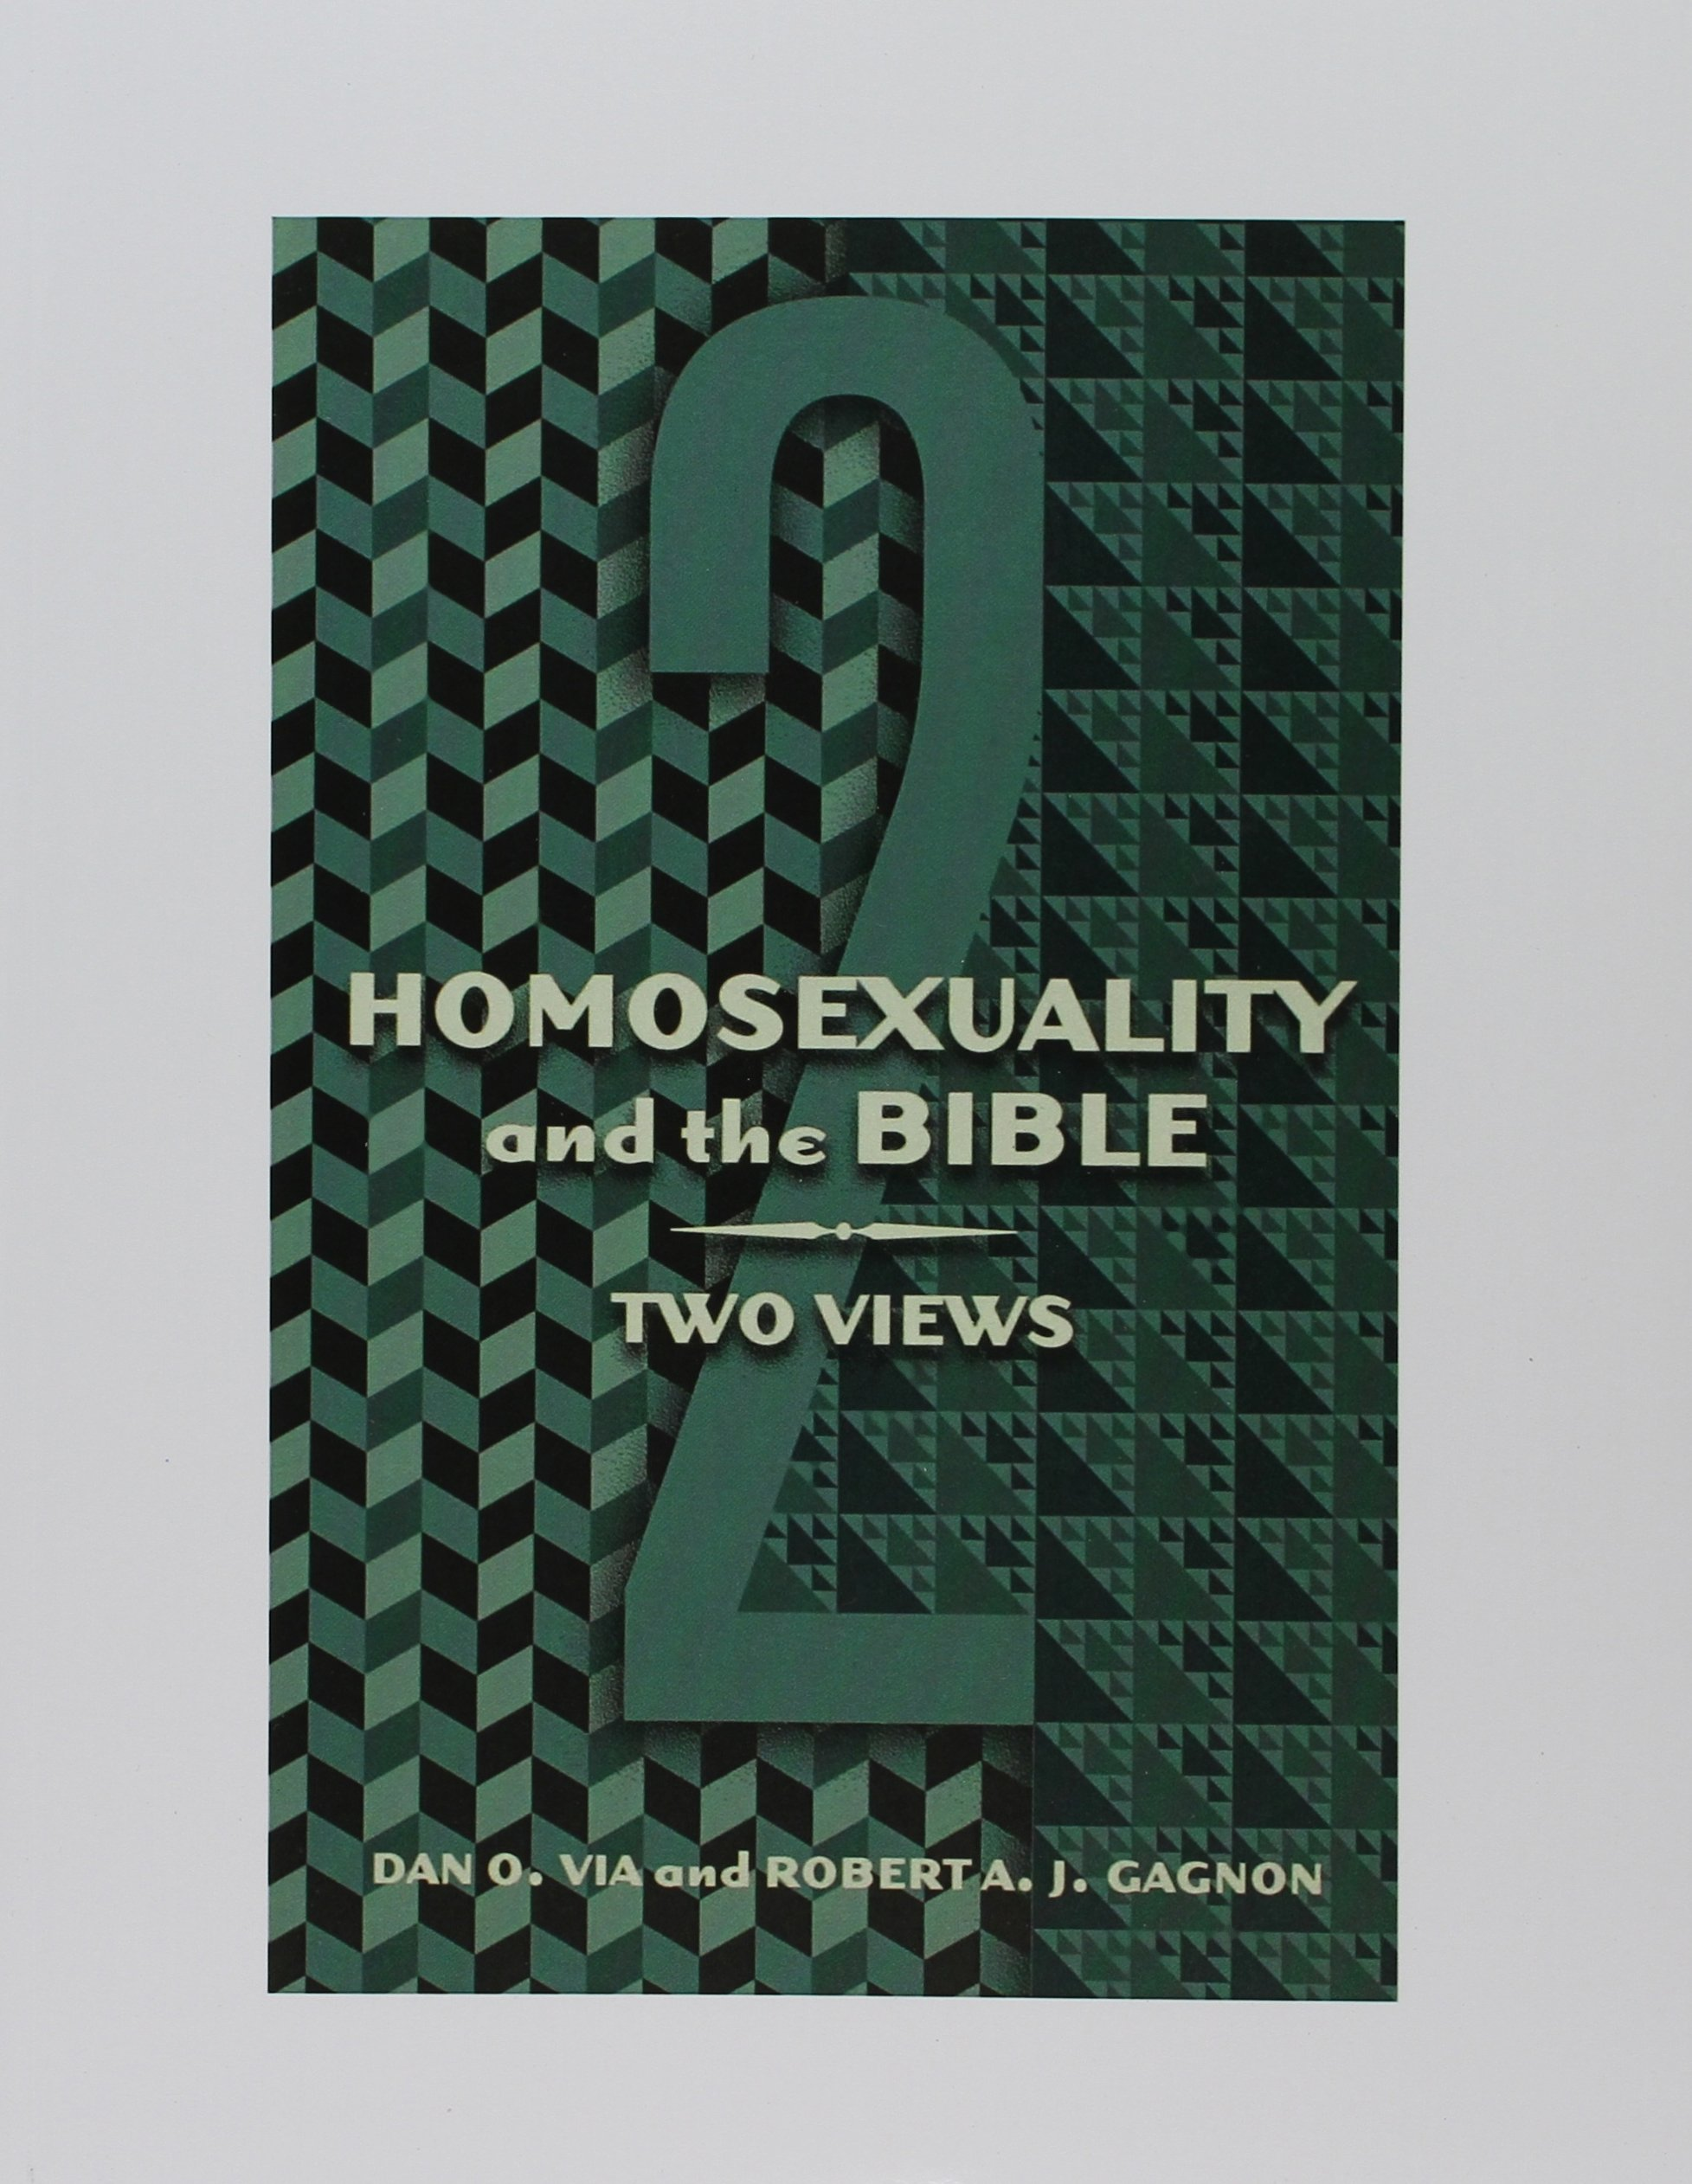 homosexuality and the bible two views robert a j gagnon dan o homosexuality and the bible two views robert a j gagnon dan o via com books